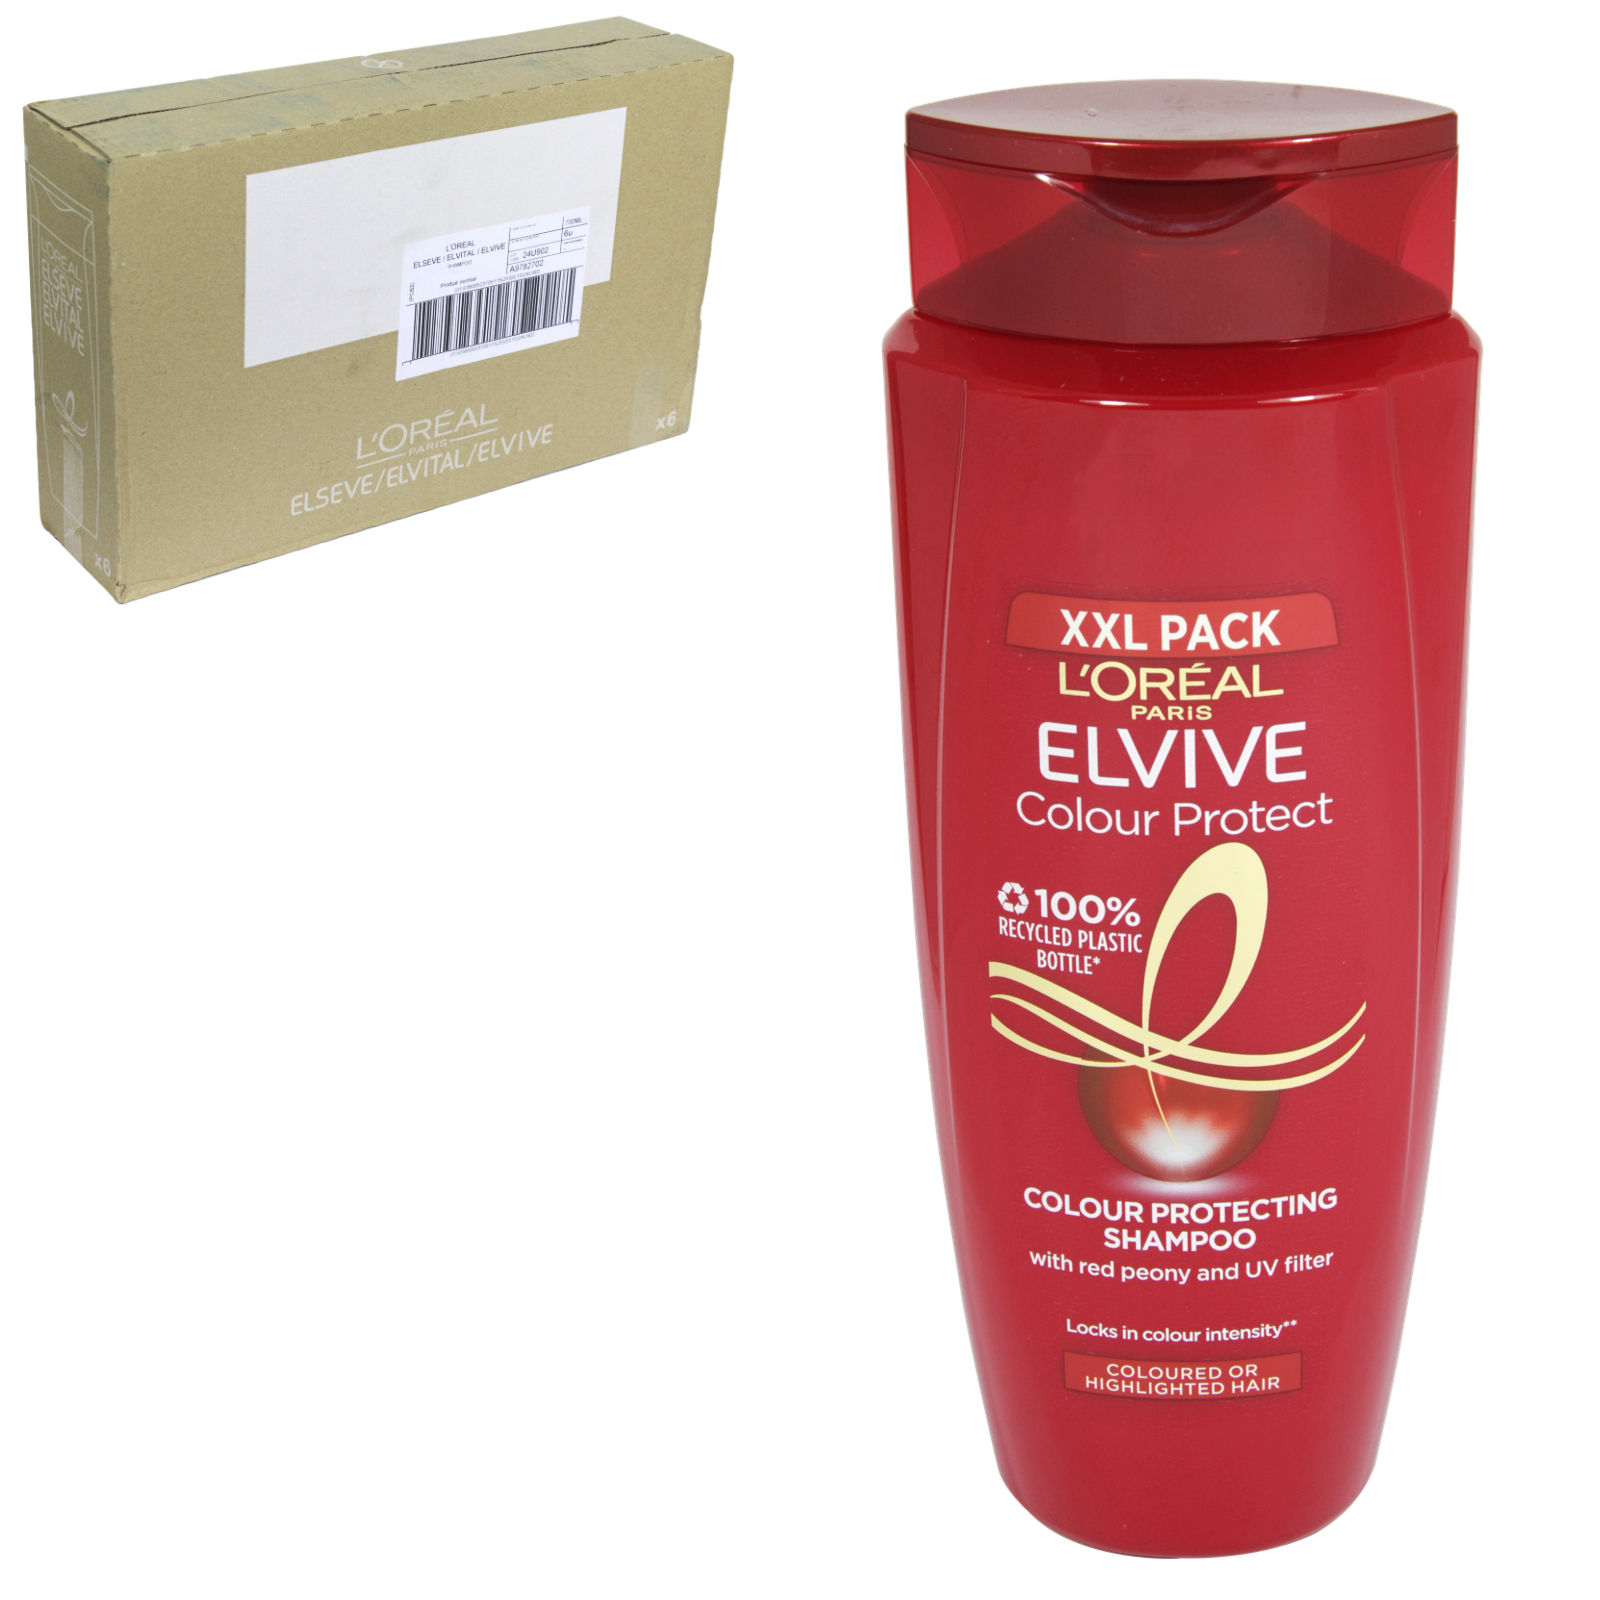 ELVIVE COLOUR PROTECT 700ML SHAMPOO COLOURED HAIR XXL PACK X6